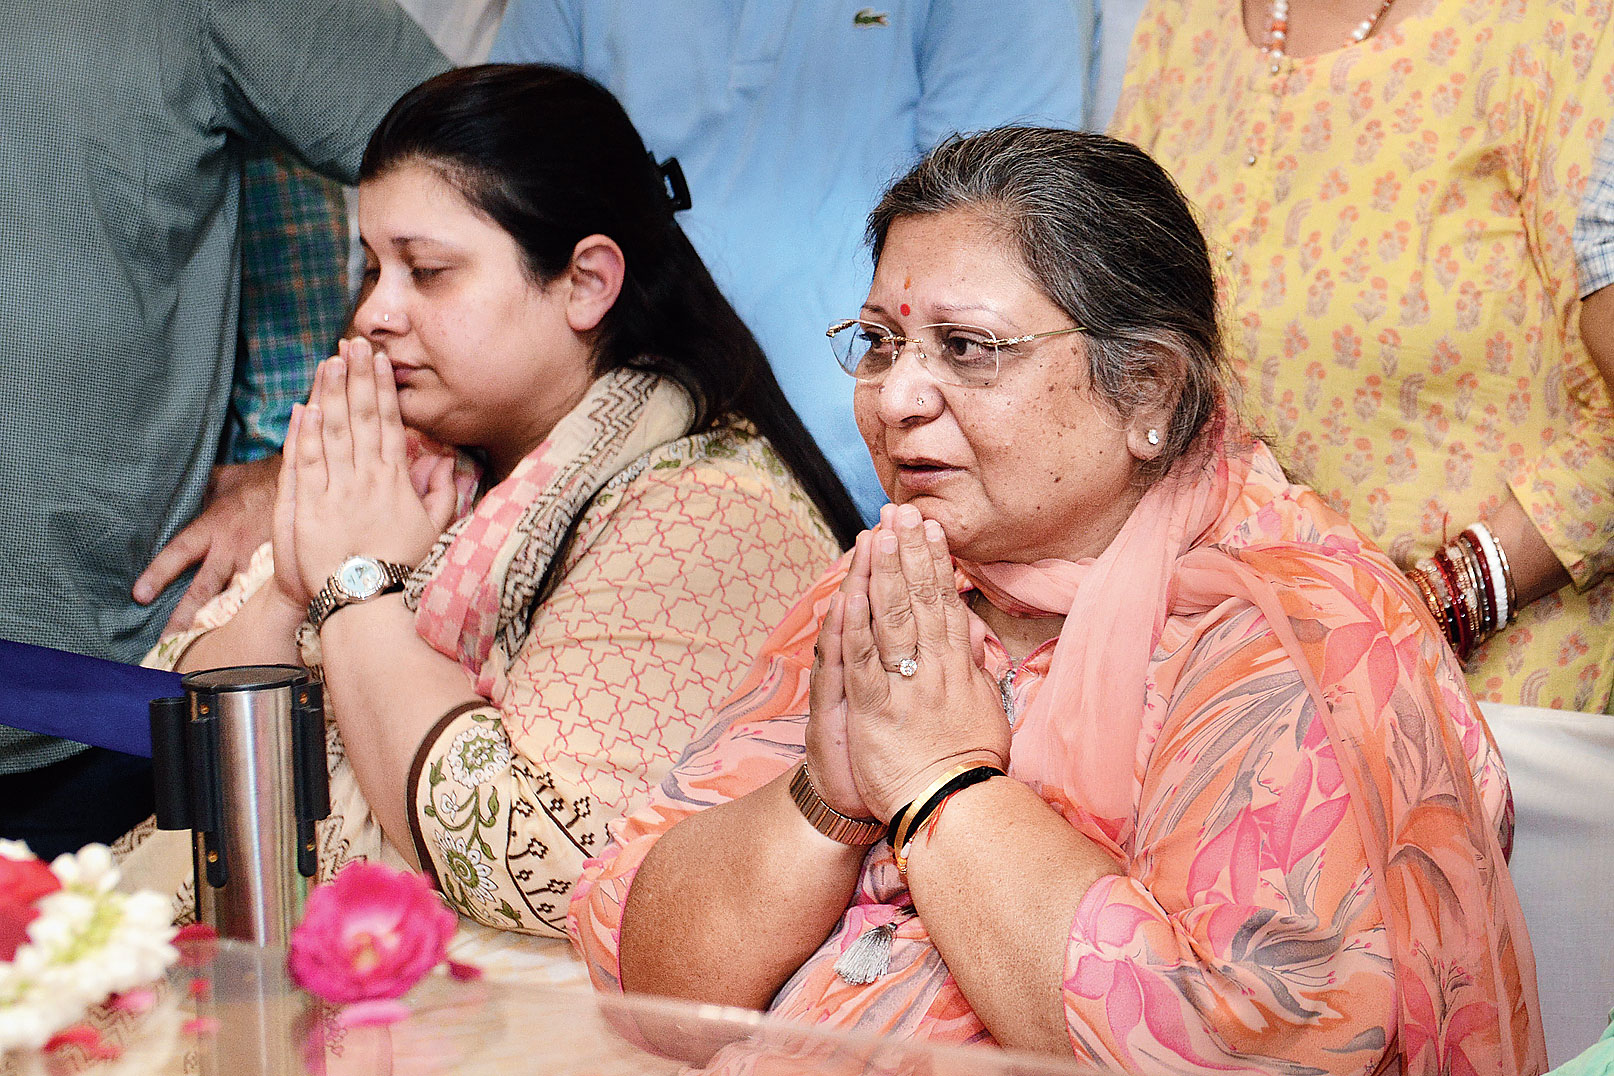 "Jaitley's wife Sangeeta and daughter Sonali at their residence in Greater Kailash, New Delhi, on Saturday. Jaitley's wife Sangeeta and daughter Sonali at their residence in Greater Kailash, New Delhi, on Saturday. Bengal chief minister Mamata Banerjee offered her condolences to Jaitley's wife and children and said: ""Extremely saddened at the passing away of Arun Jaitley Ji, after a battle bravely borne. An outstanding parliamentarian & a brilliant lawyer, appreciated across parties. His contribution to Indian polity will be remembered."" Picture by Prem Singh"